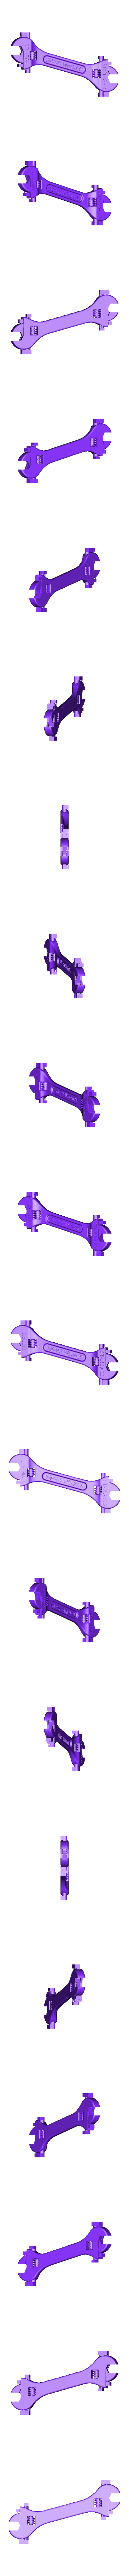 SmartWrench_w_Supports.stl Download free STL file Fully assembled 3D printable SMART wrench • 3D printer design, bLiTzJoN